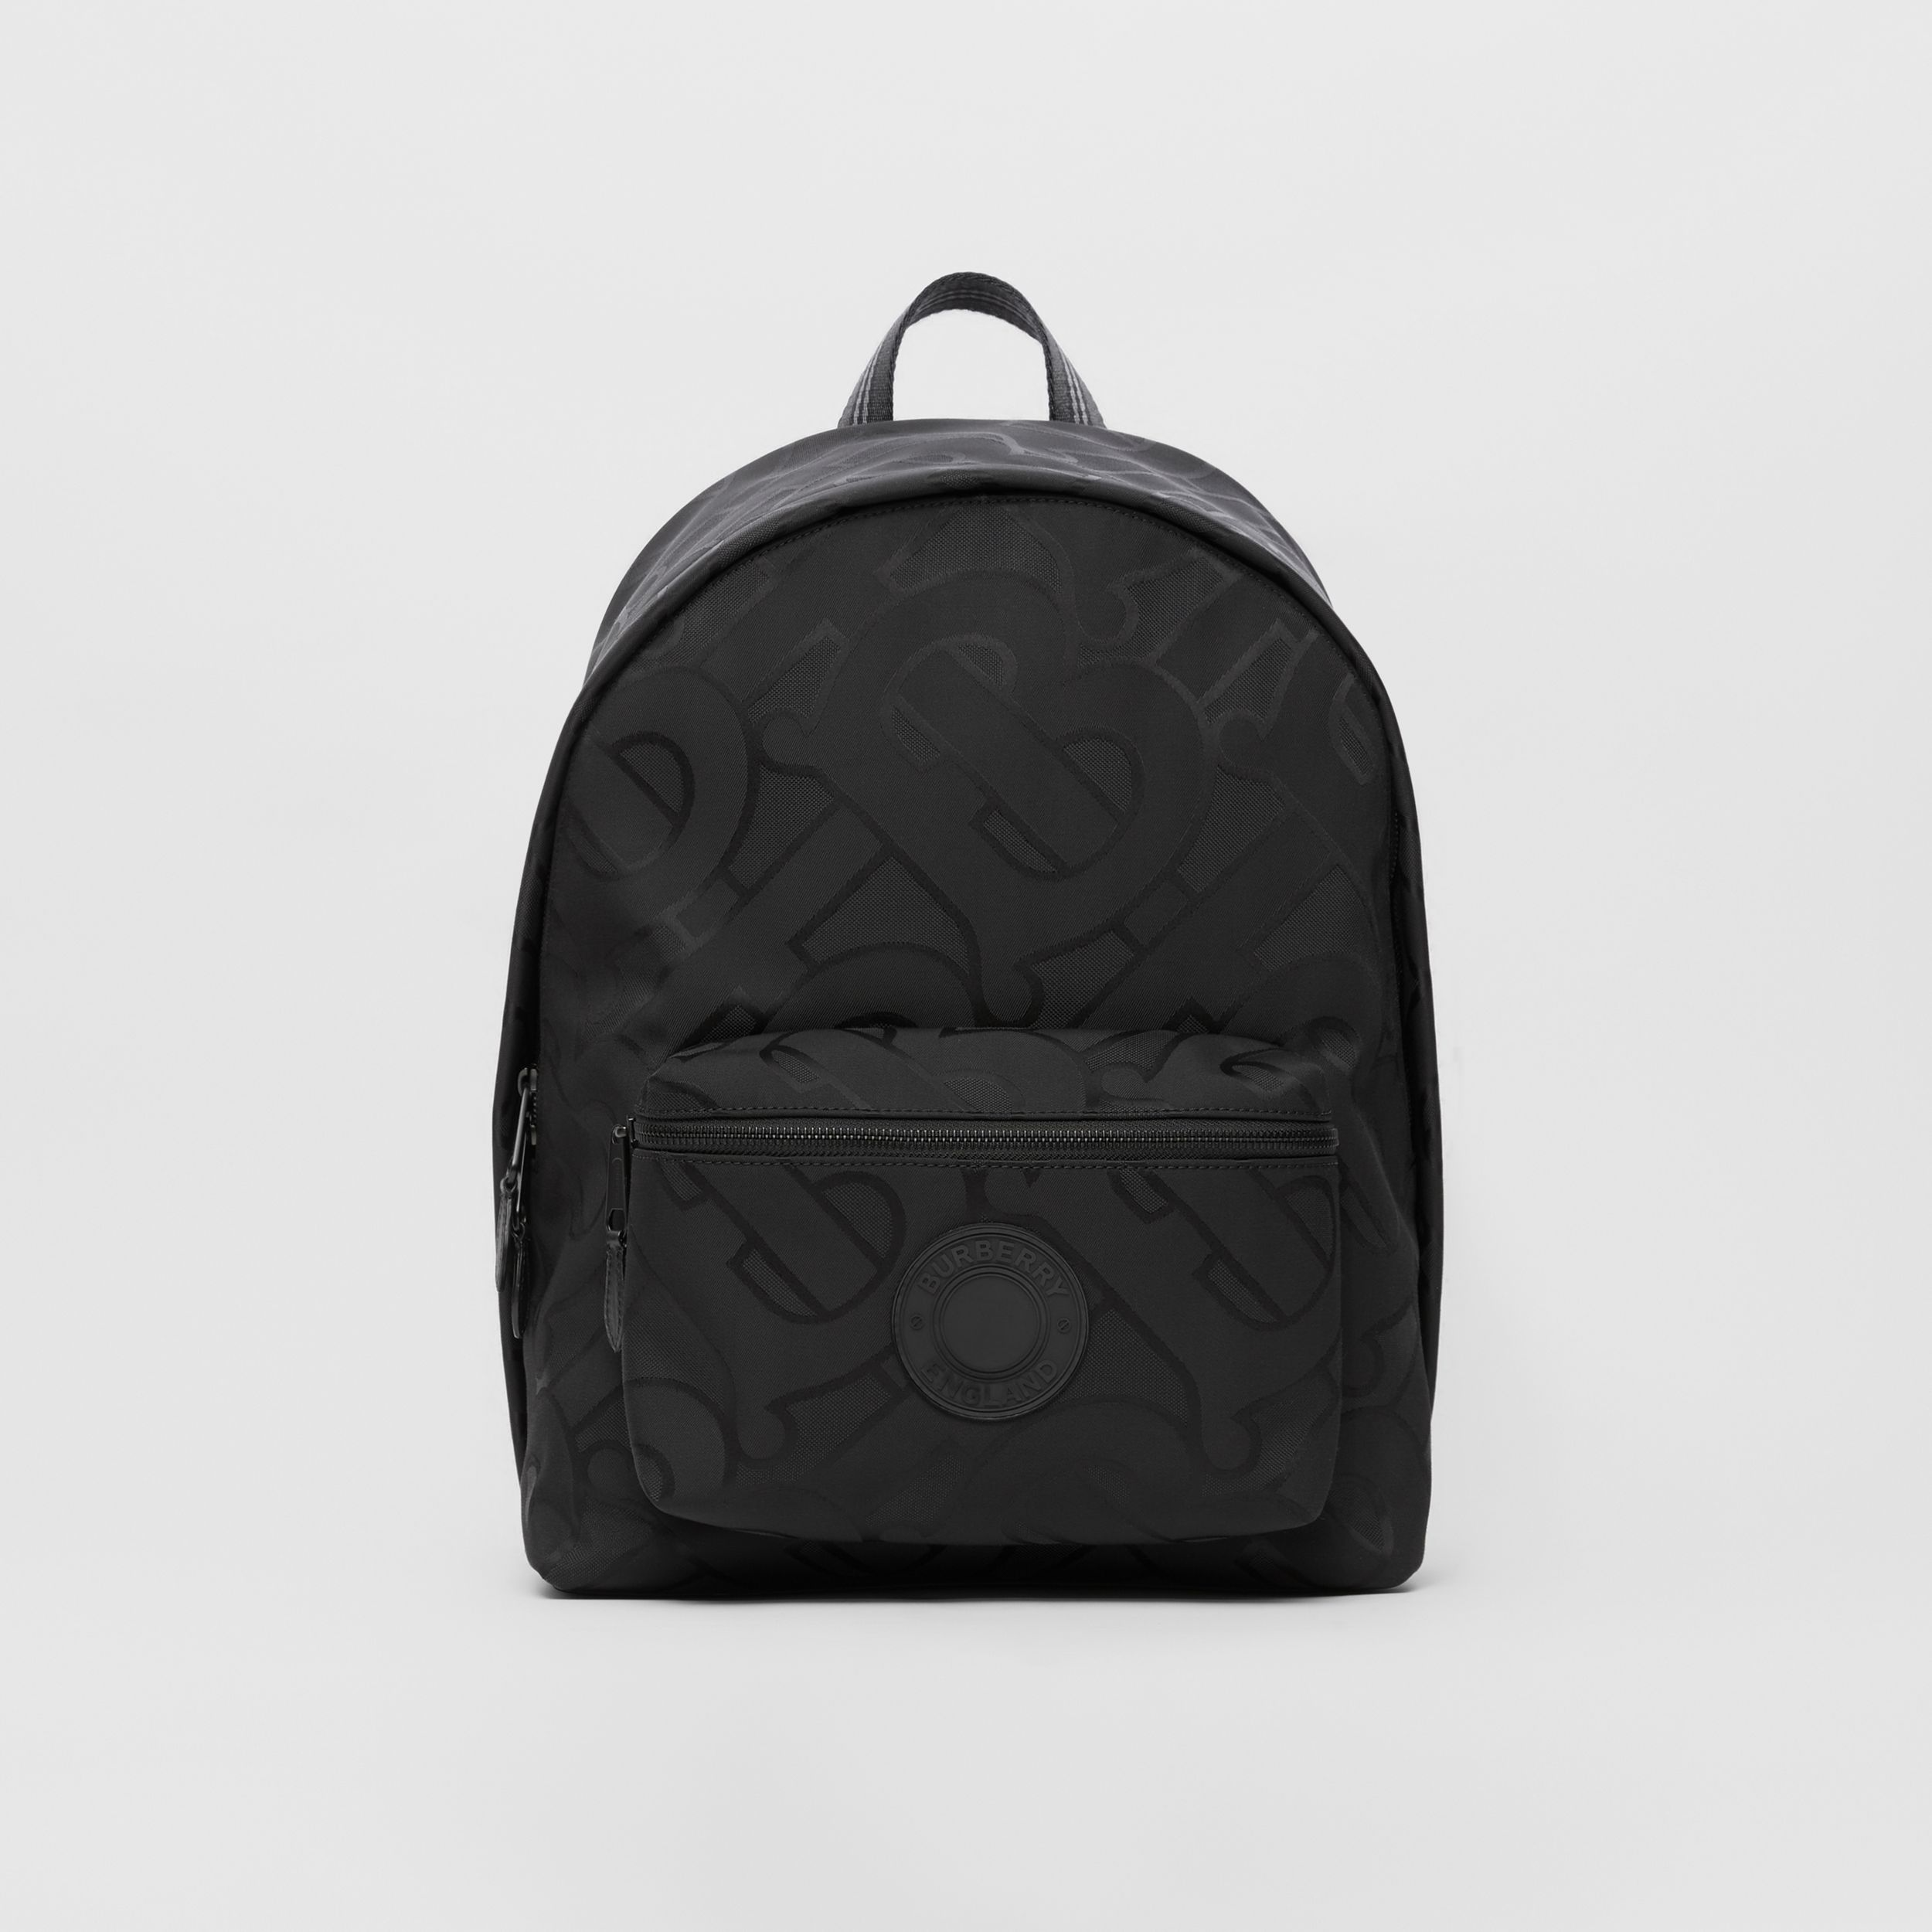 Monogram Recycled Polyester Jacquard Backpack in Black - Men | Burberry Singapore - 1